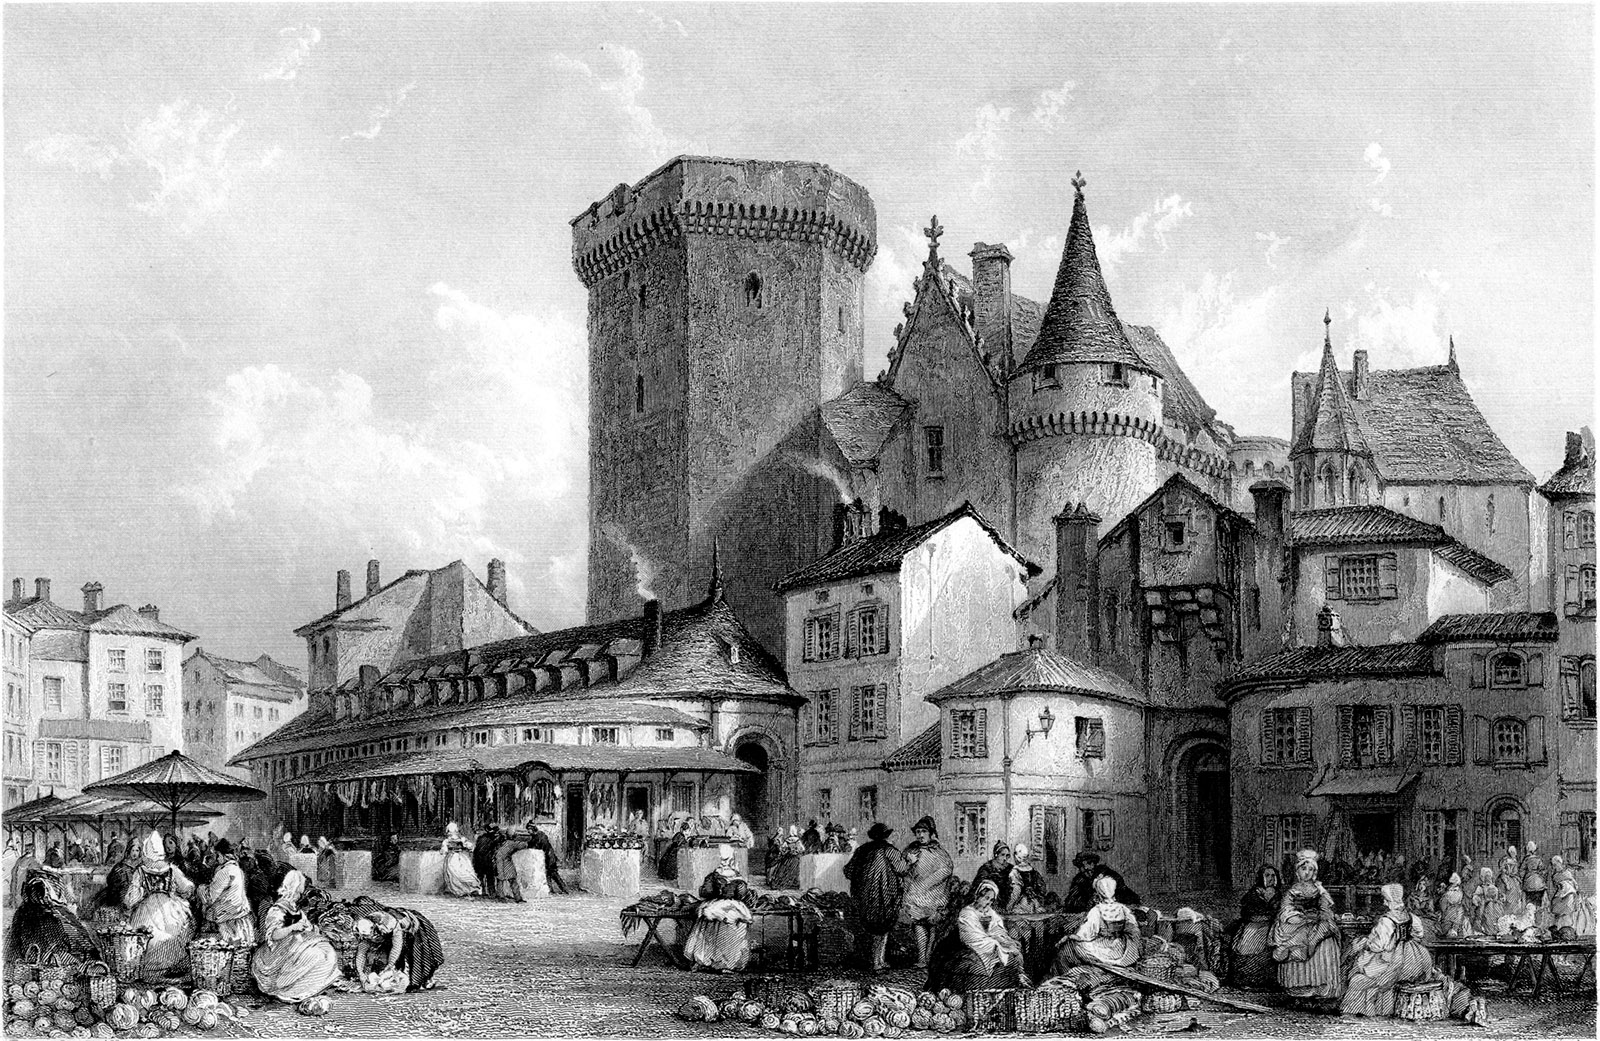 Market Place, Angoulême; engraving by M.J. Starling